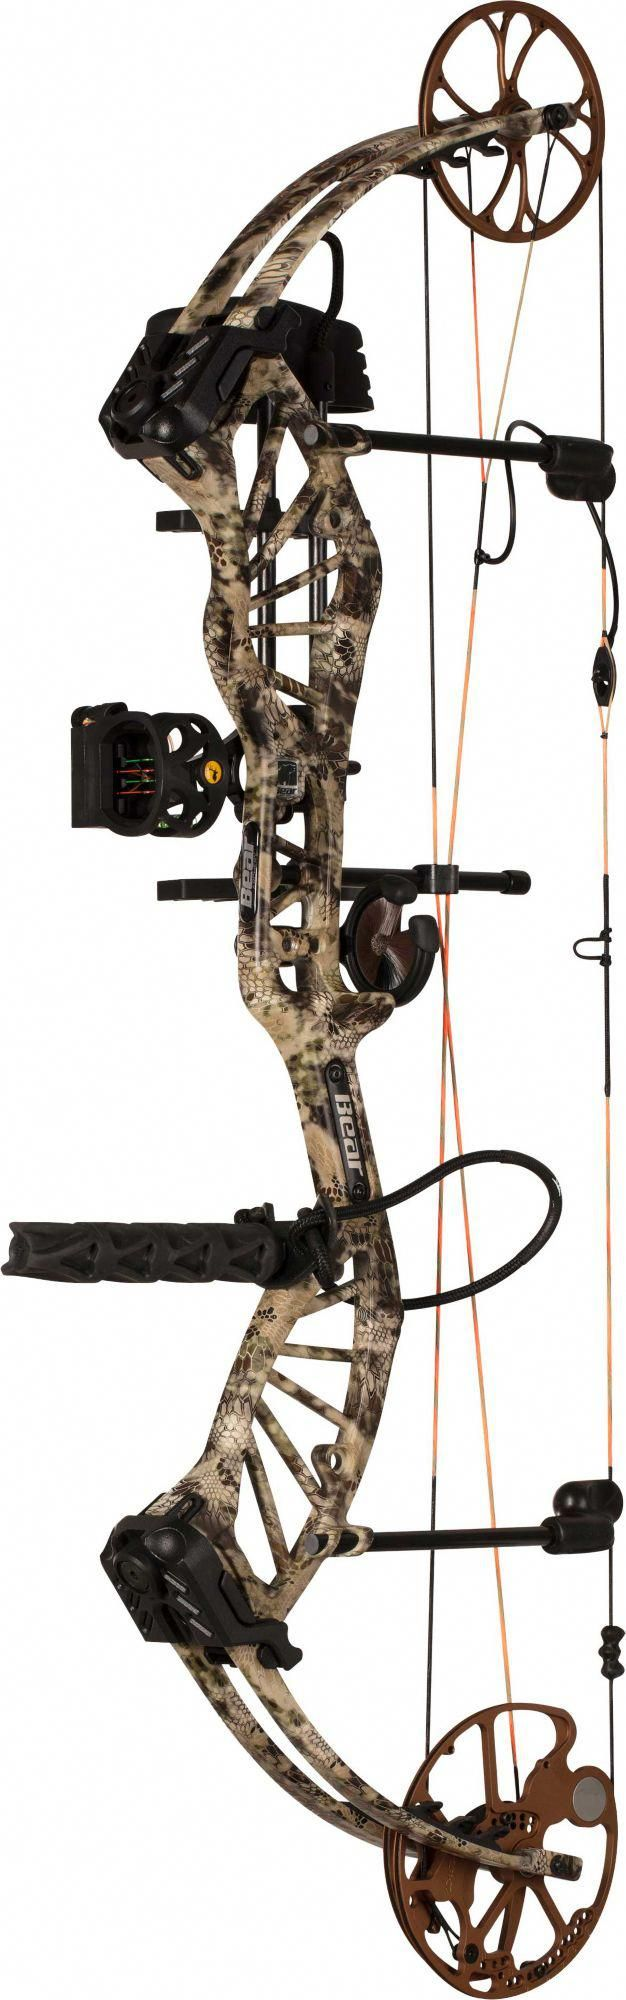 Bear Archery Approach RTH Compound Bow Package, Kryptek